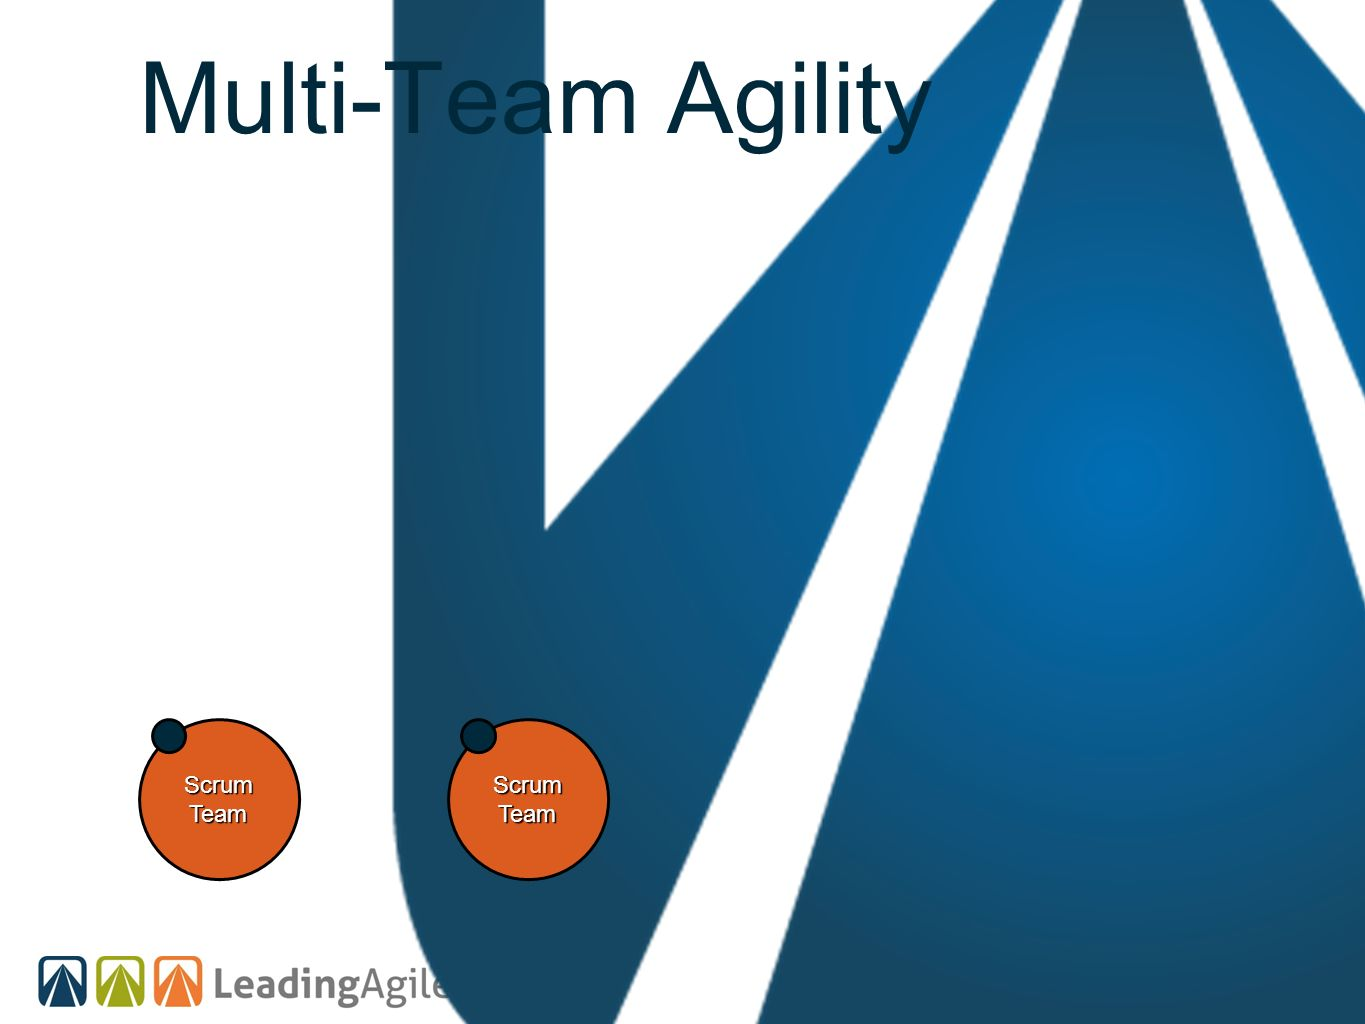 Multi-Team Agility Scrum Team Scrum Team